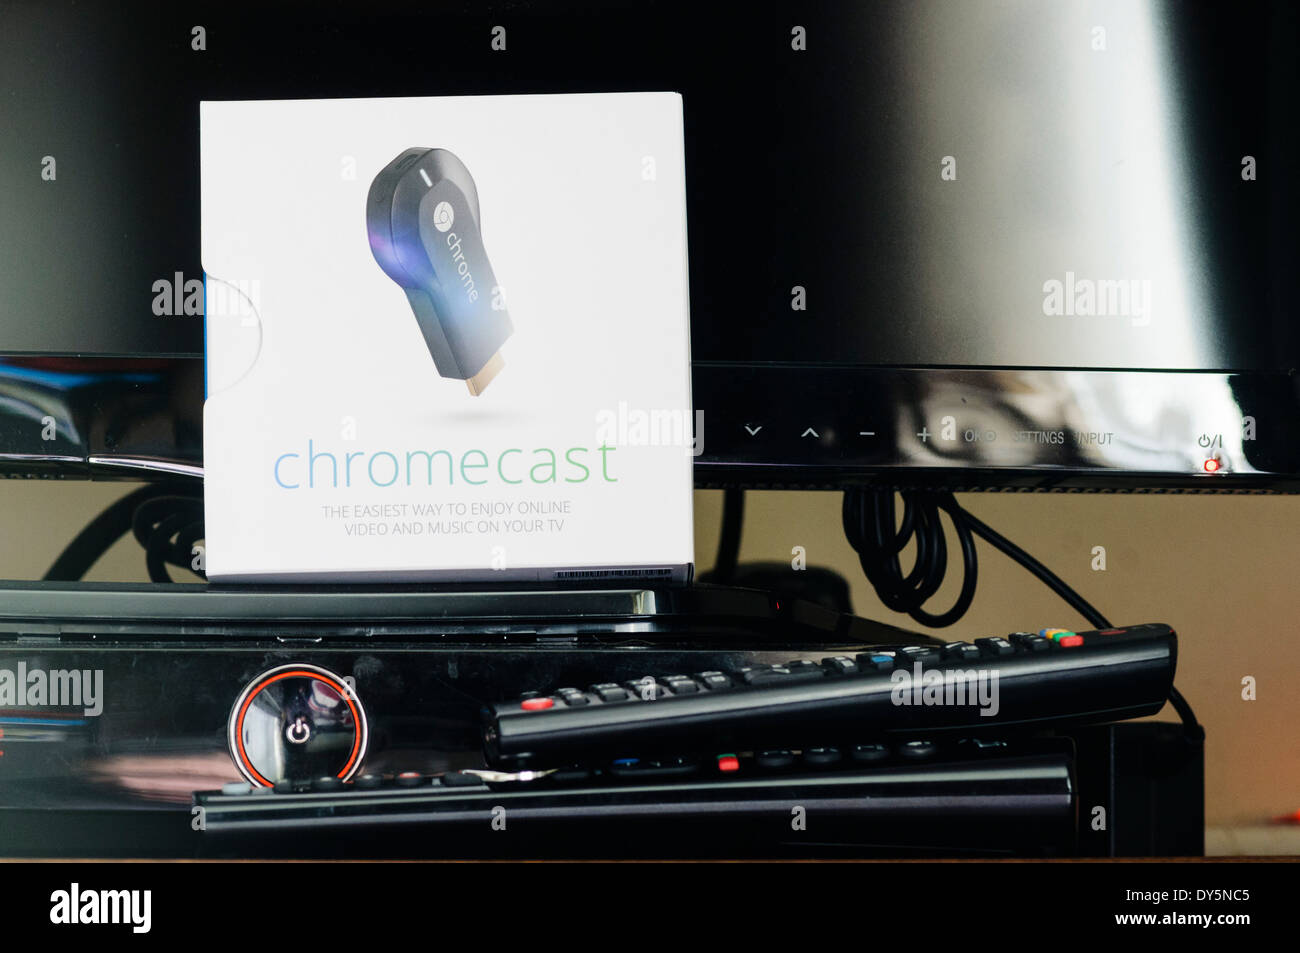 Google Chromecast streaming TV dispositivo pronto per essere installato Immagini Stock